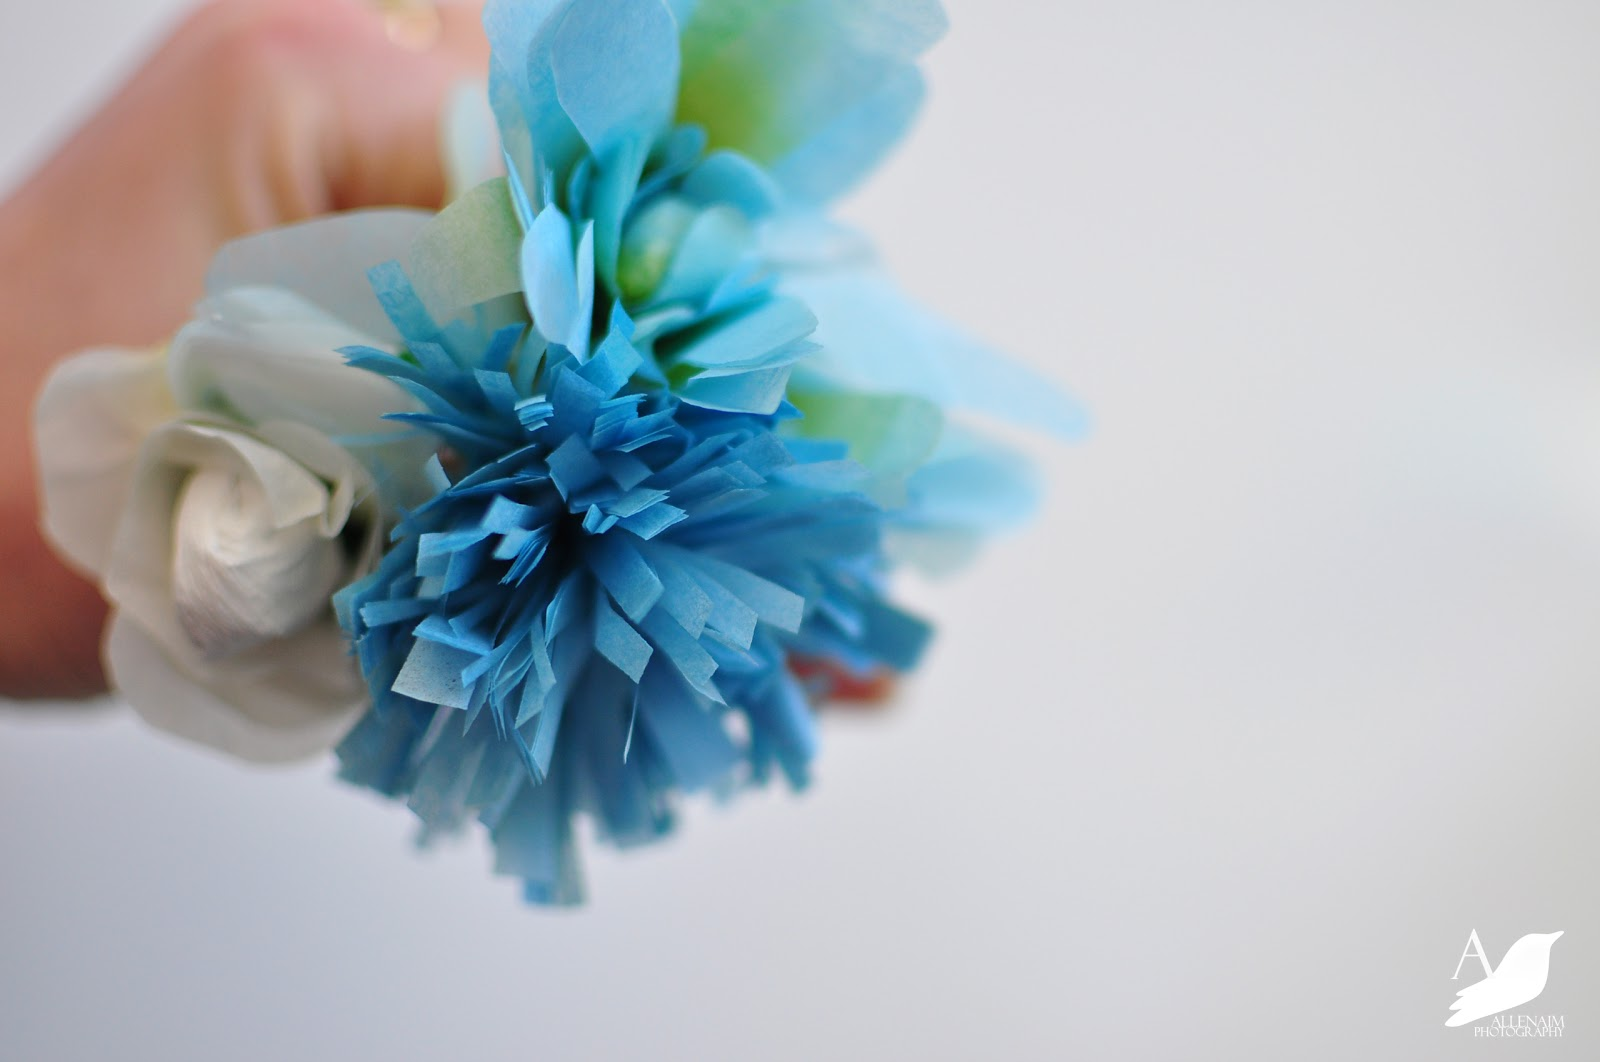 tissue paper flowers for kids Spring tissue paper flower craft for kids this activity was prompted by my 5 year old who loves to create with markers, crayons, paints, glitter, etc.